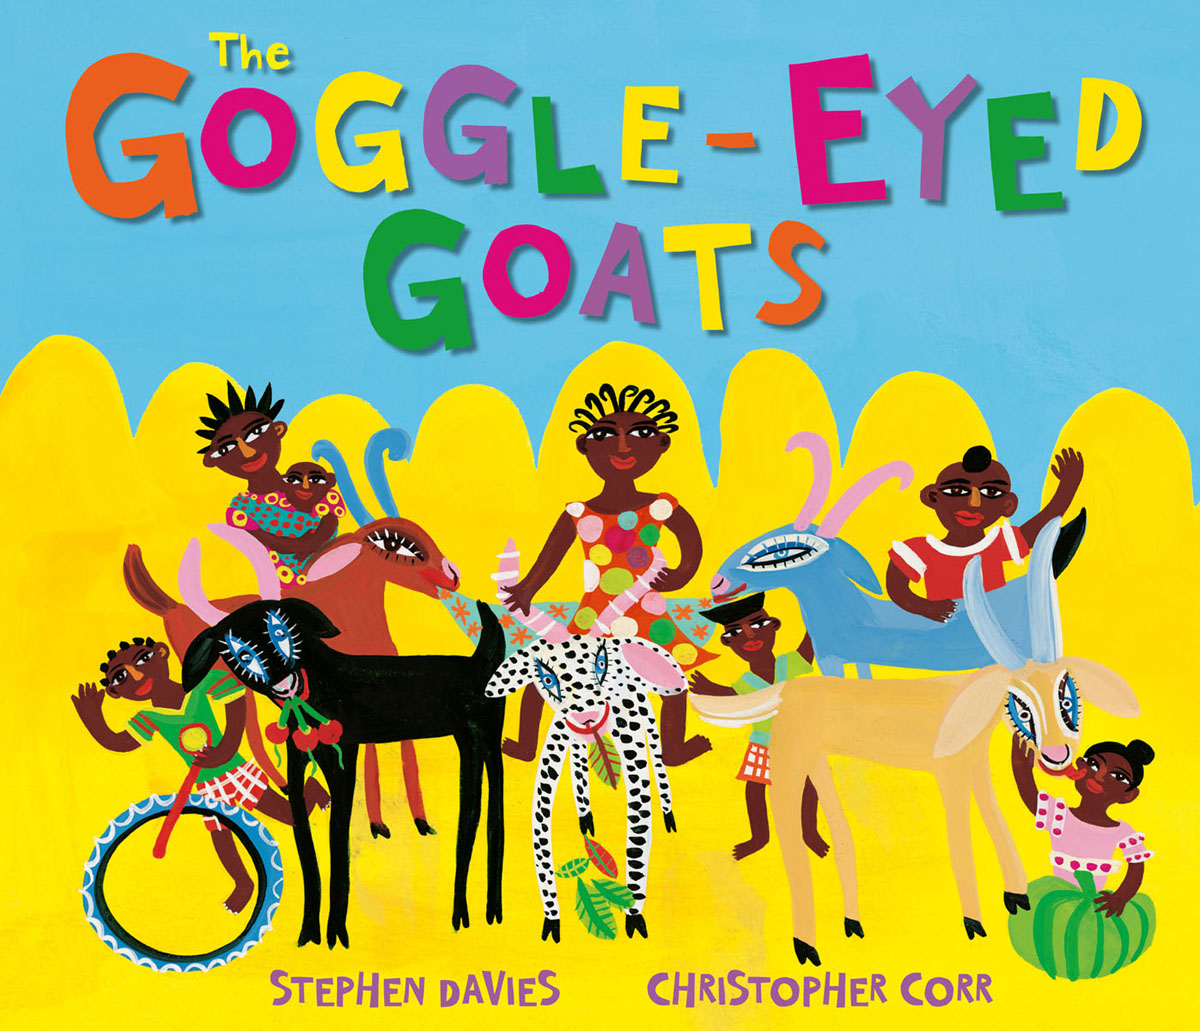 The Goggle-Eyed Goats three billy goats level 1